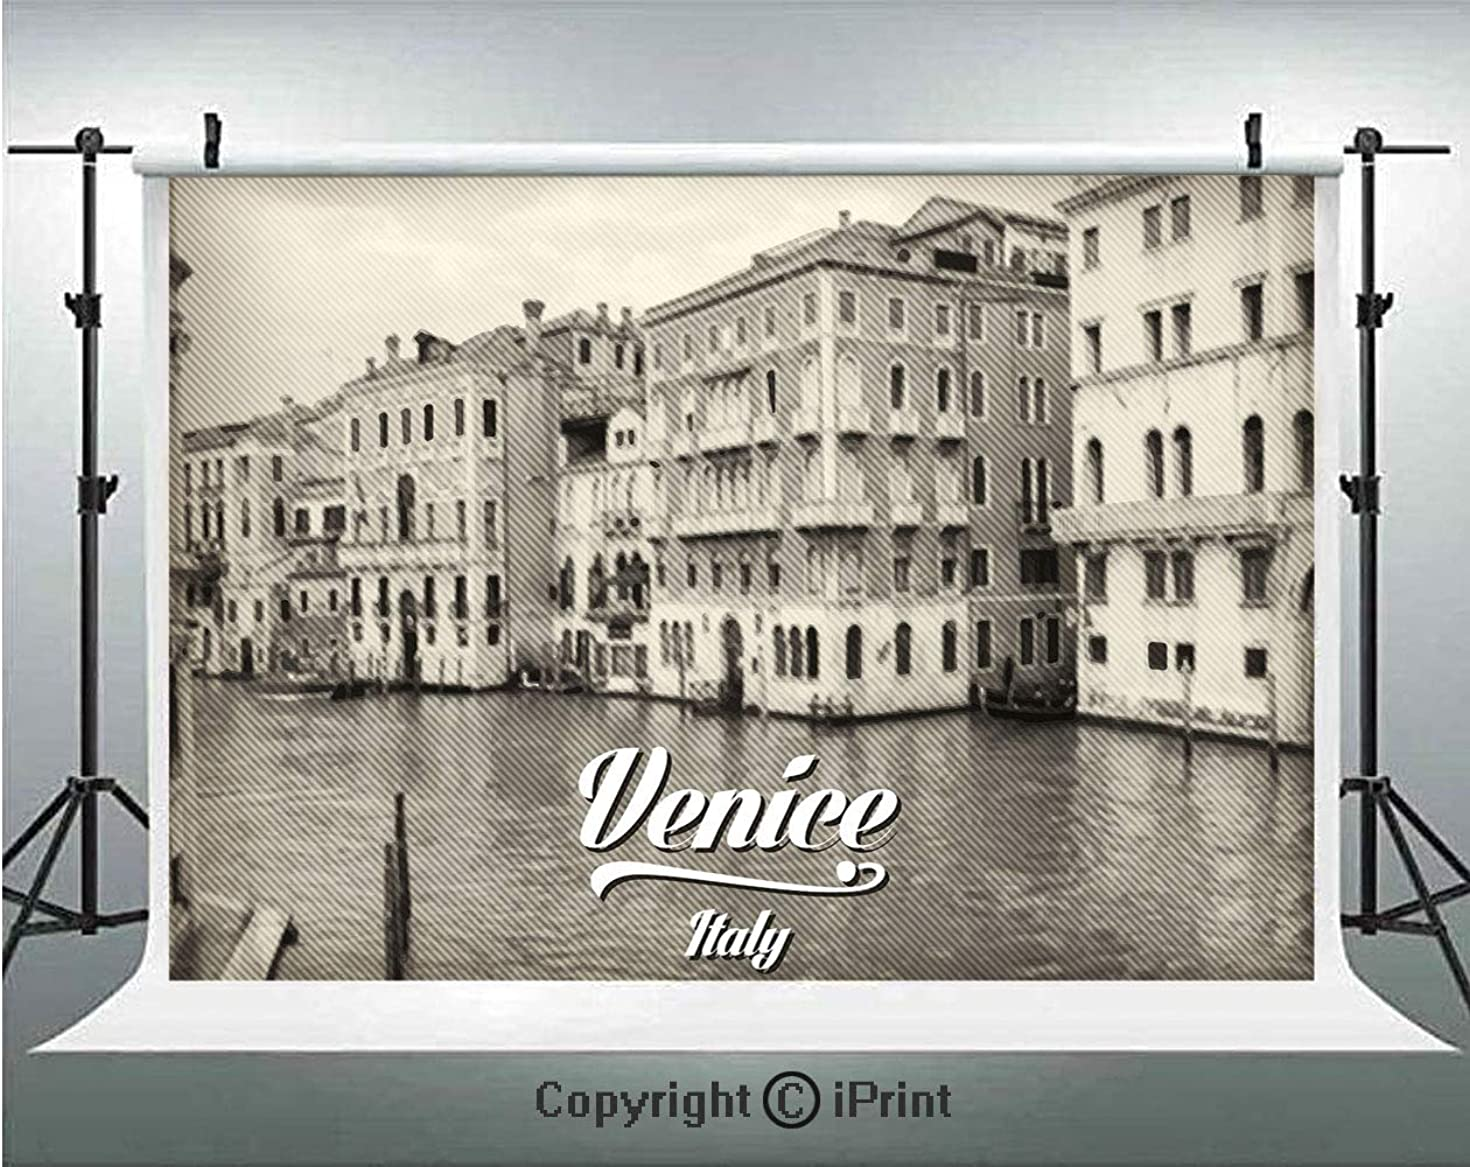 Venice Photography Backdrops Old Photo of Venice Italian City Vintage Filter Effect and Lettering History Memory,Birthday Party Background Customized Microfiber Photo Studio Props,10x6.5ft,Eggshell